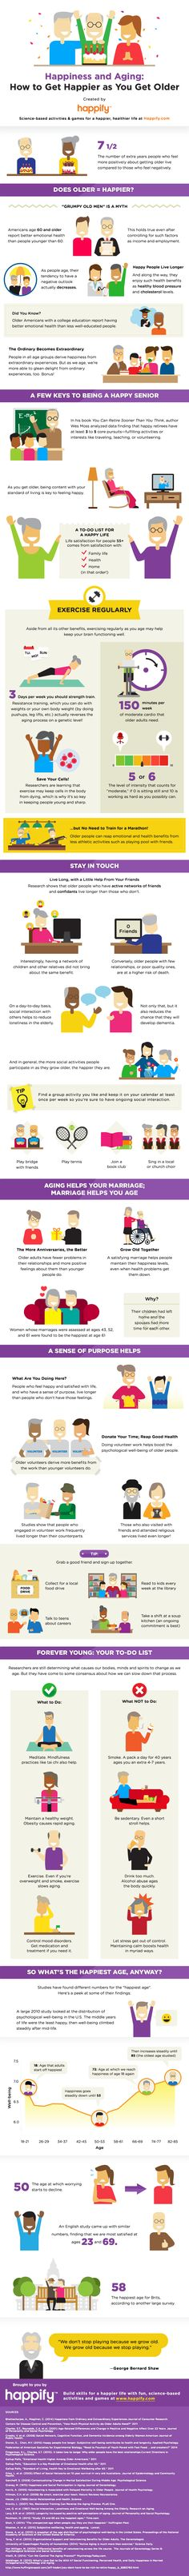 We can't stay young forever. We all get older. But instead of getting all down about it, why not use the wisdom we gain throughout our lives to make us happier? That seems like a nice idea, and the folks at Happify have created an infographic to show you how. Enjoy!